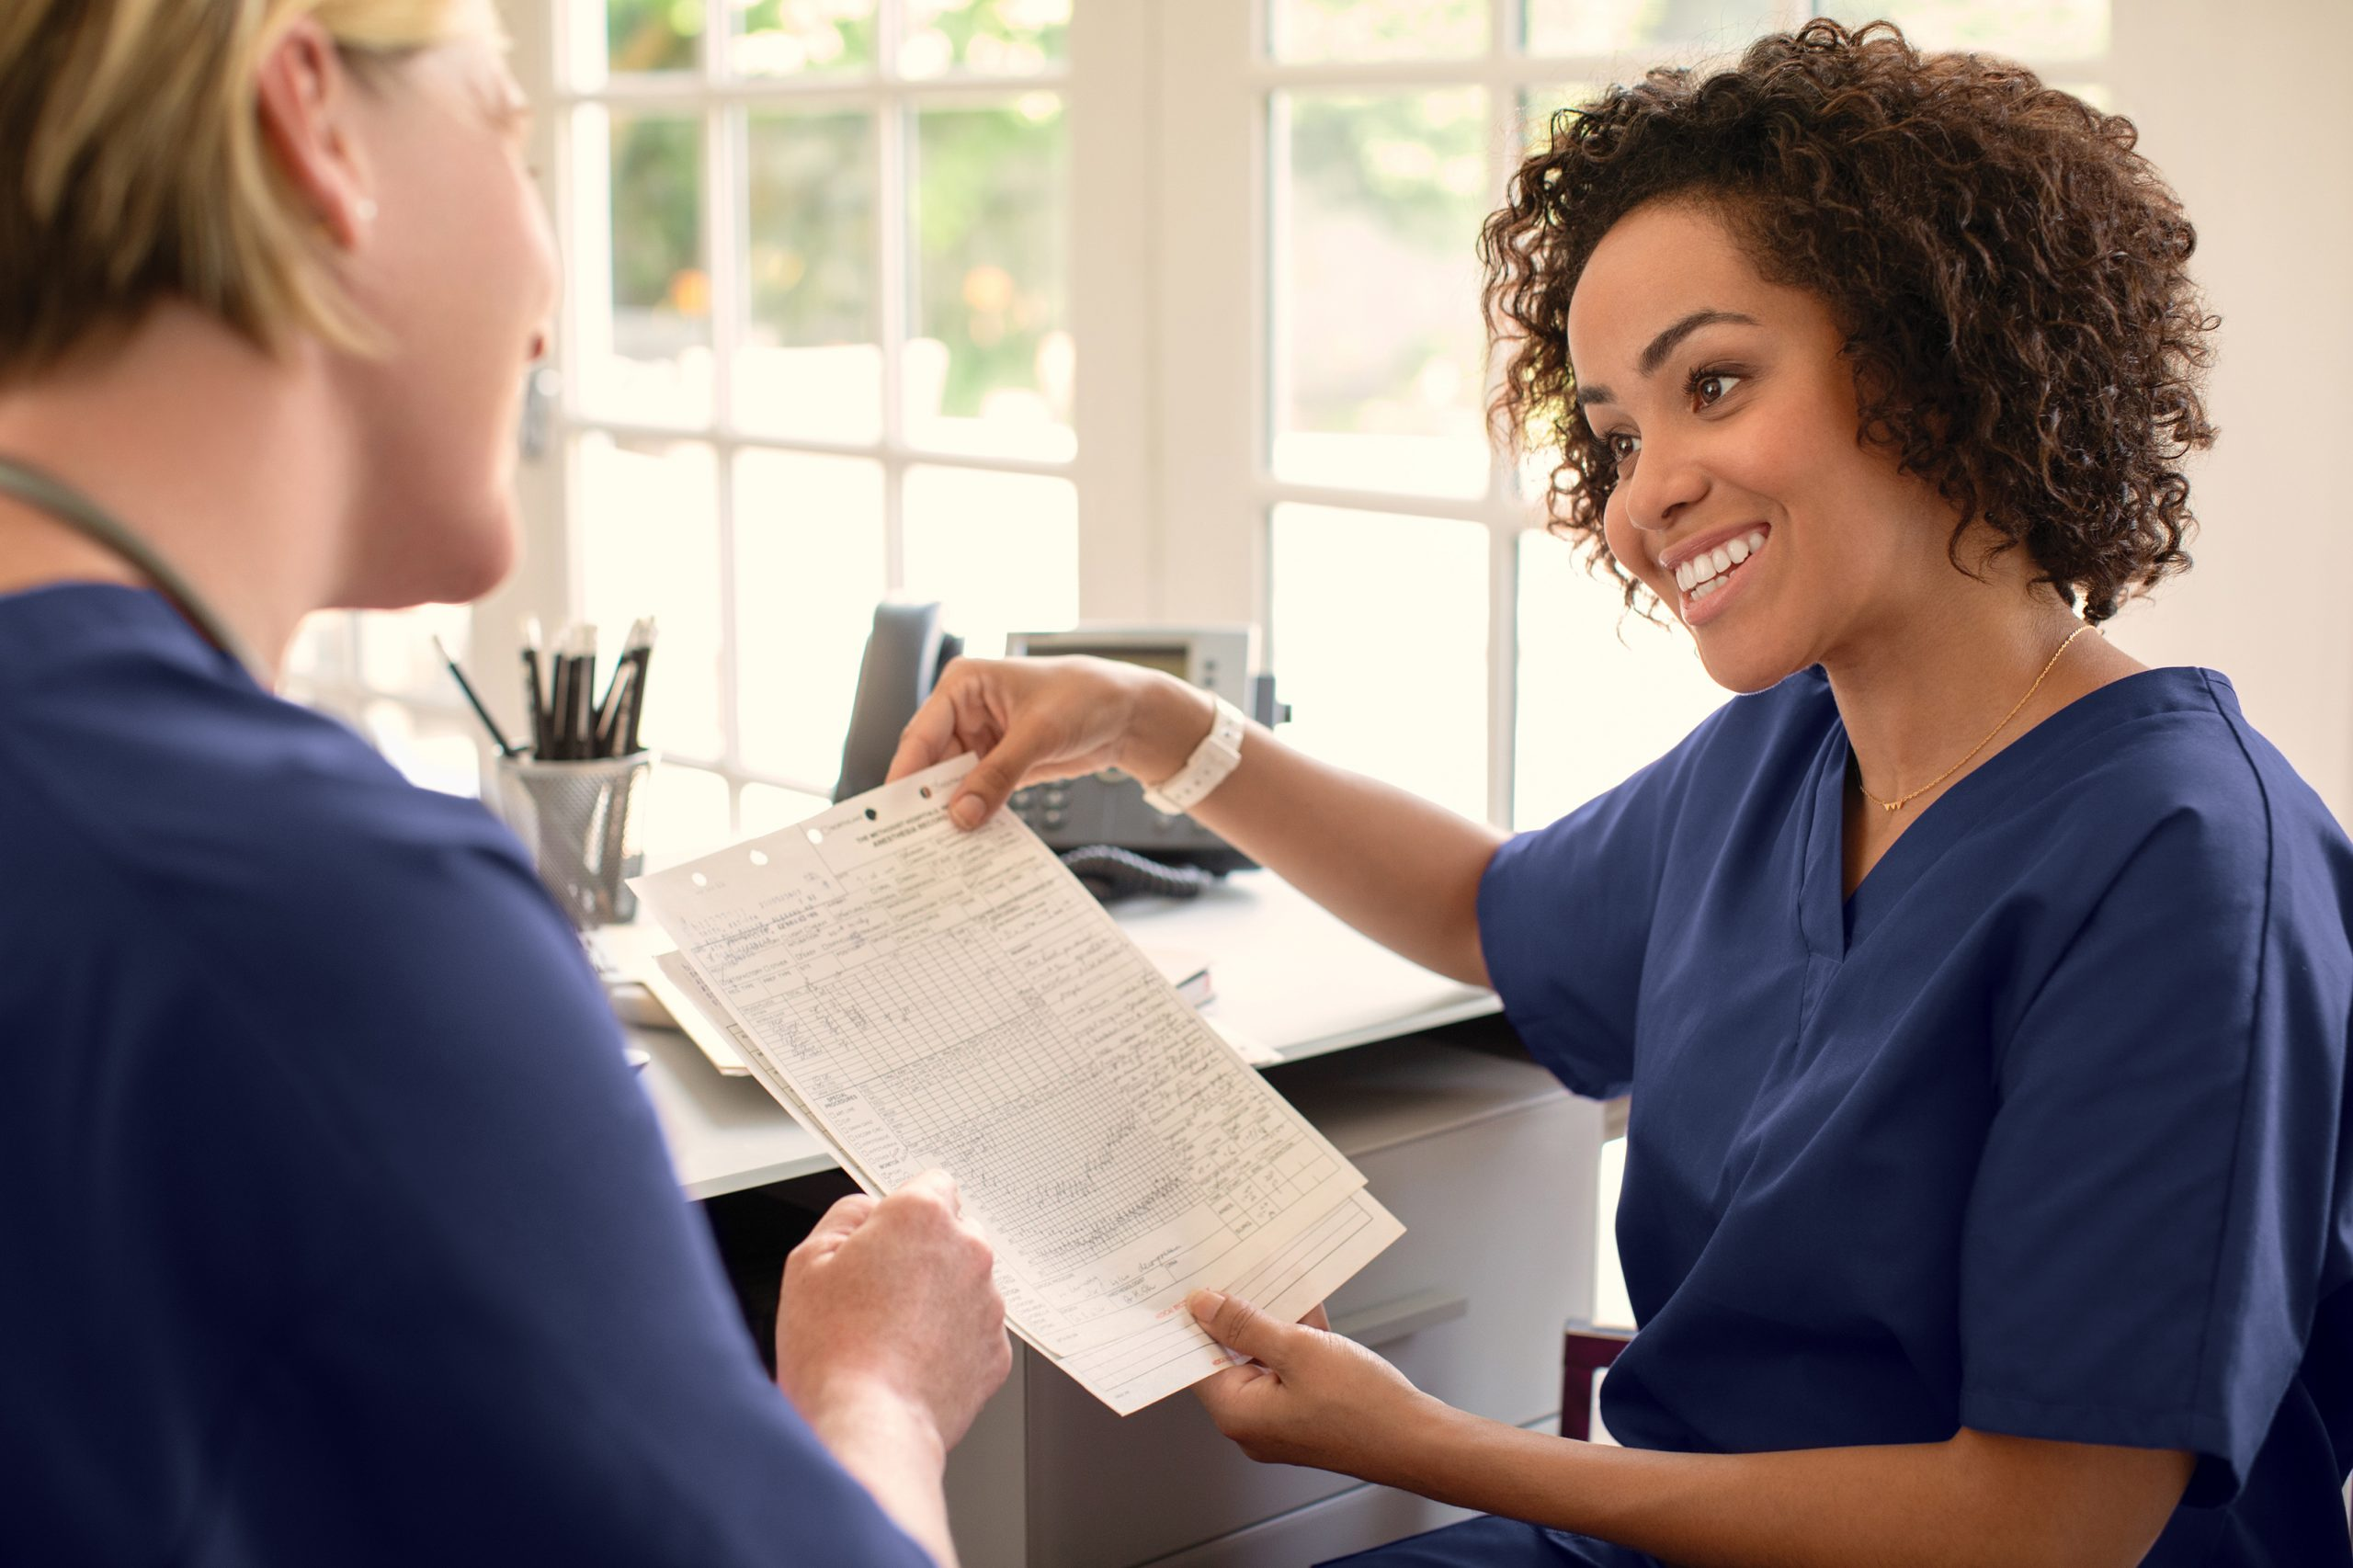 Benefits of home health care services to patients